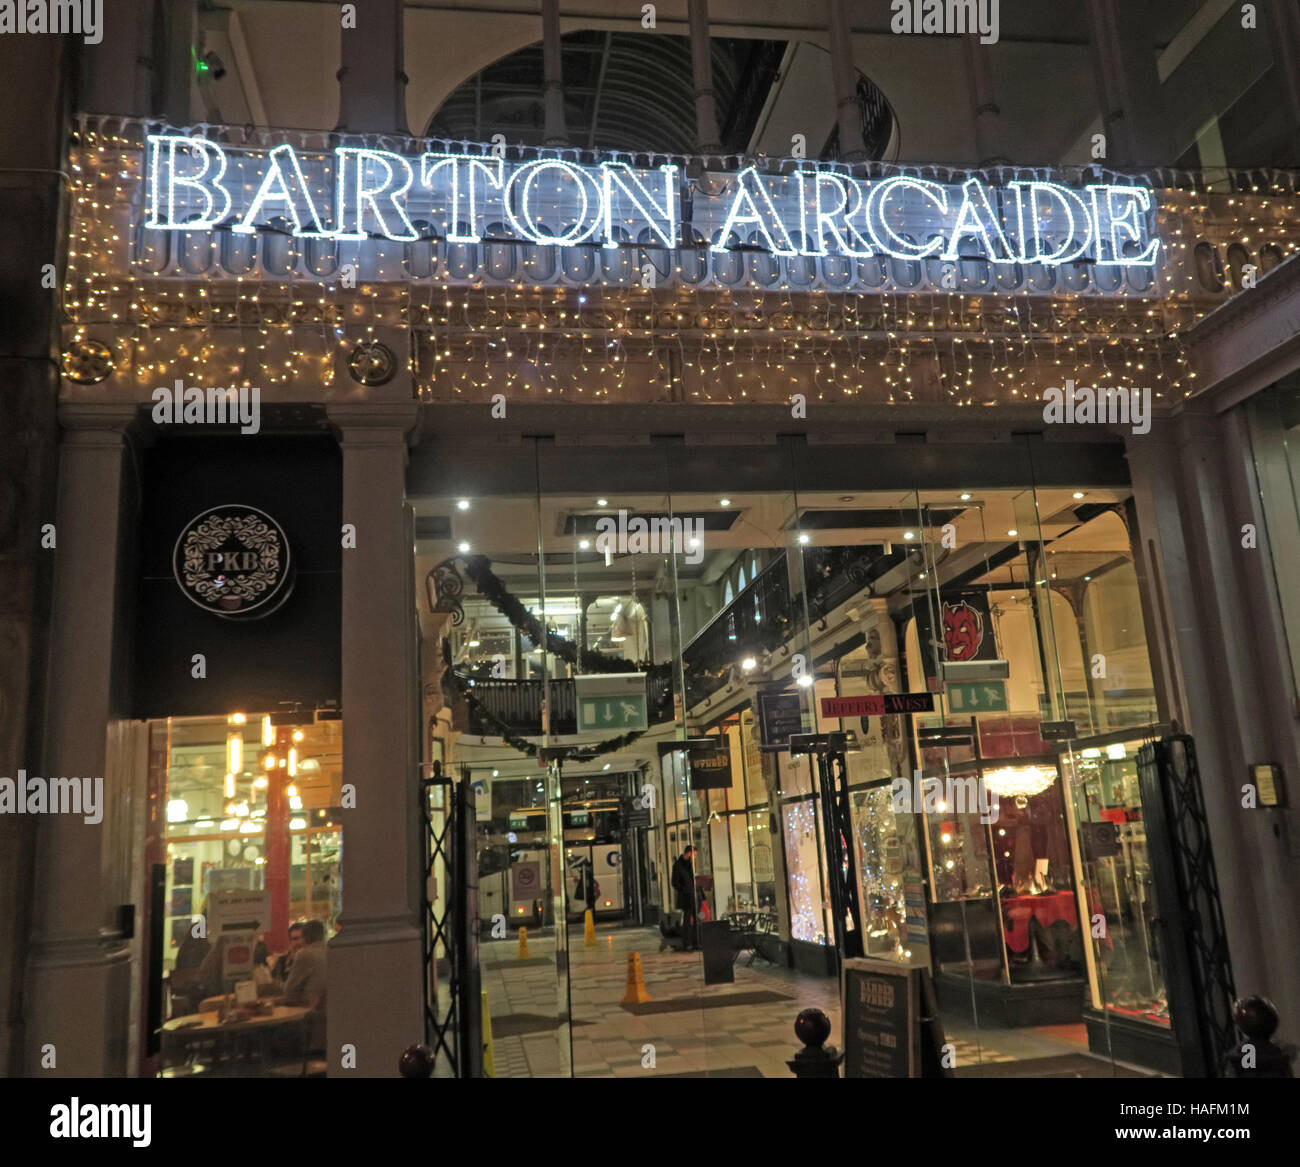 Barton Arcade,Manchester retail shopping, Winter,England, UK - Stock Image